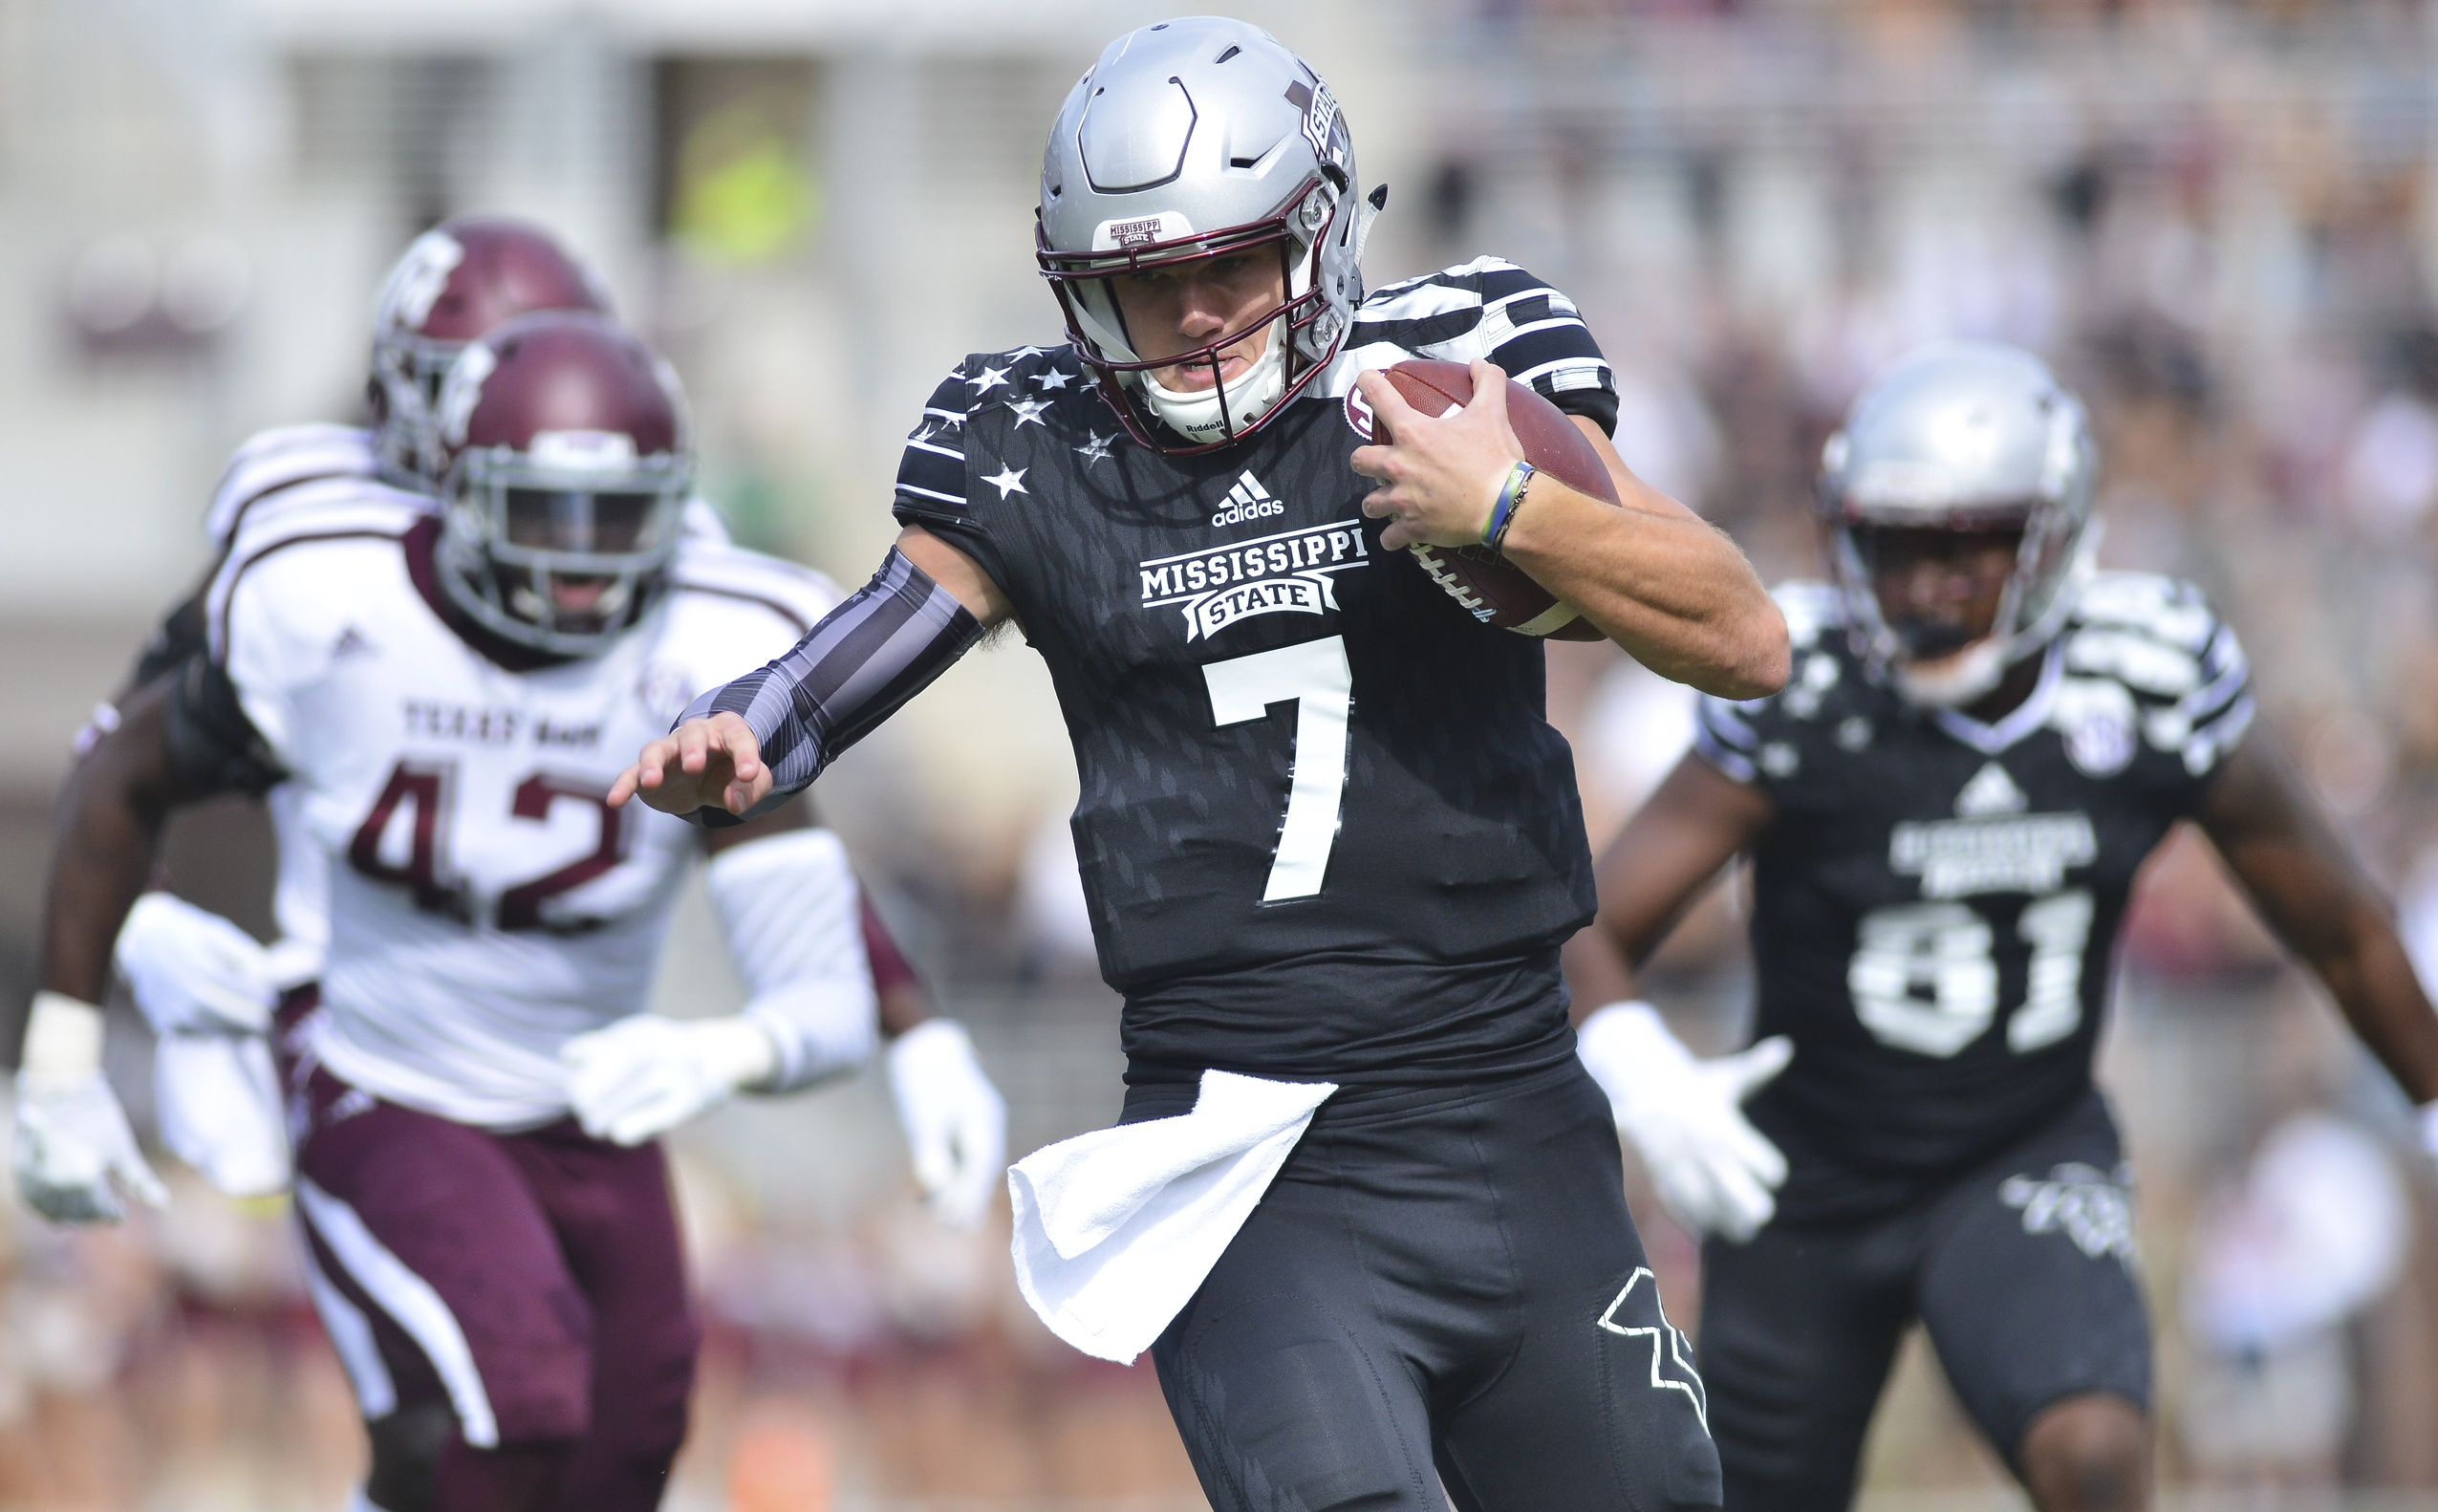 Nov 5, 2016; Starkville, MS, USA;Mississippi State Bulldogs quarterback Nick Fitzgerald (7) carries the ball during the first quarter against the Texas A&M Aggies at Davis Wade Stadium. Mandatory Credit: Matt Bush-USA TODAY Sports